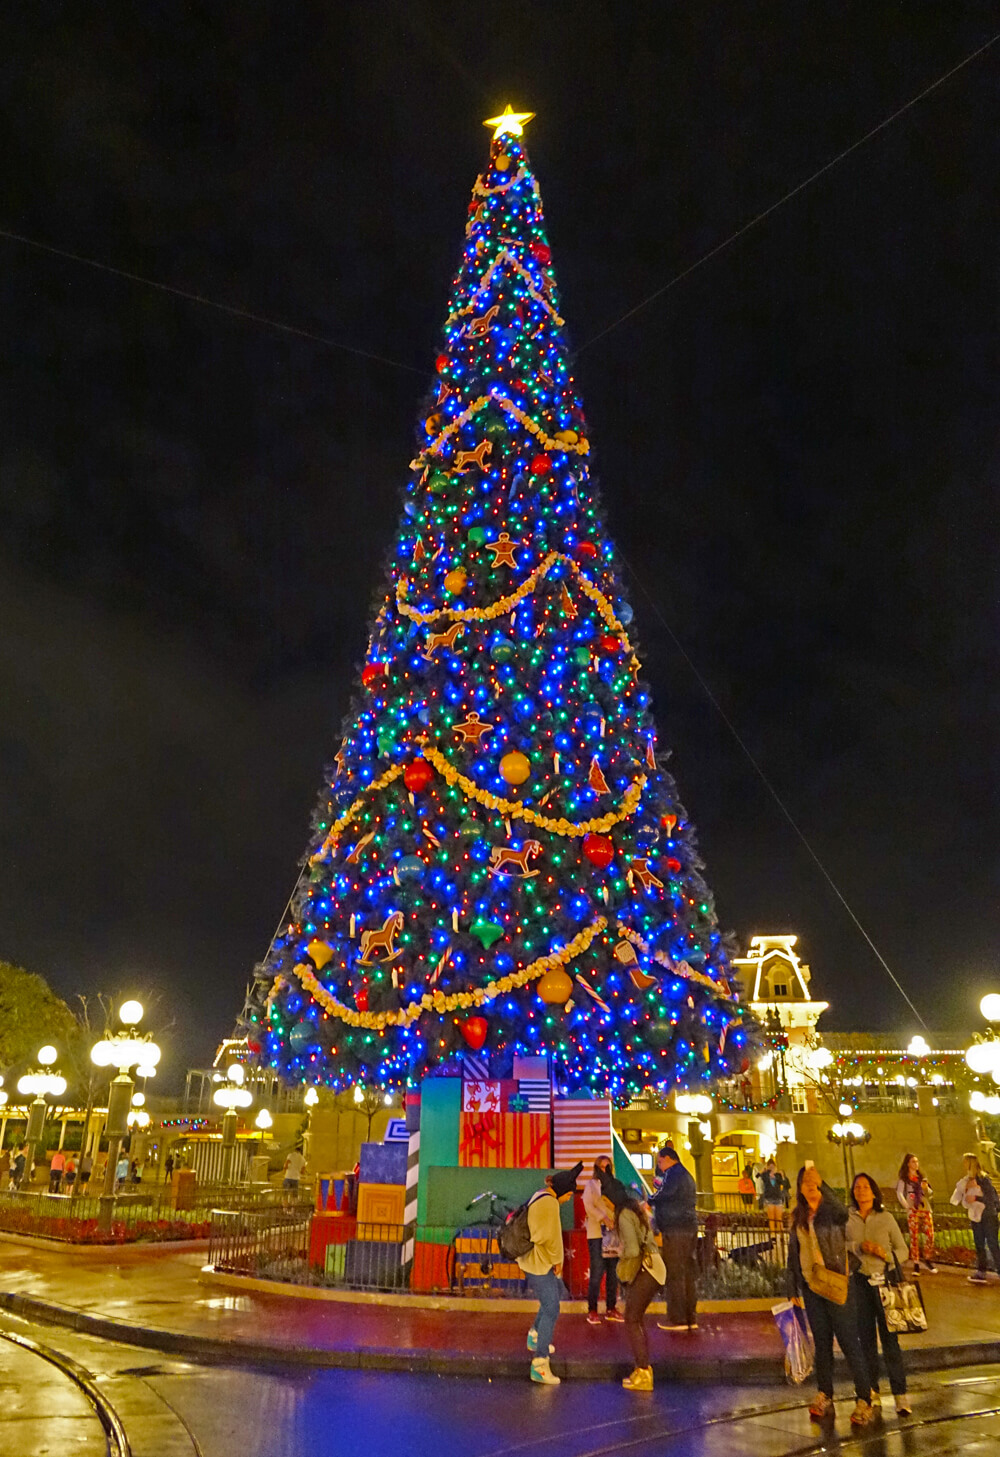 disney world holiday events 2018 magic kingdom tree - When Does Disneyworld Decorate For Christmas